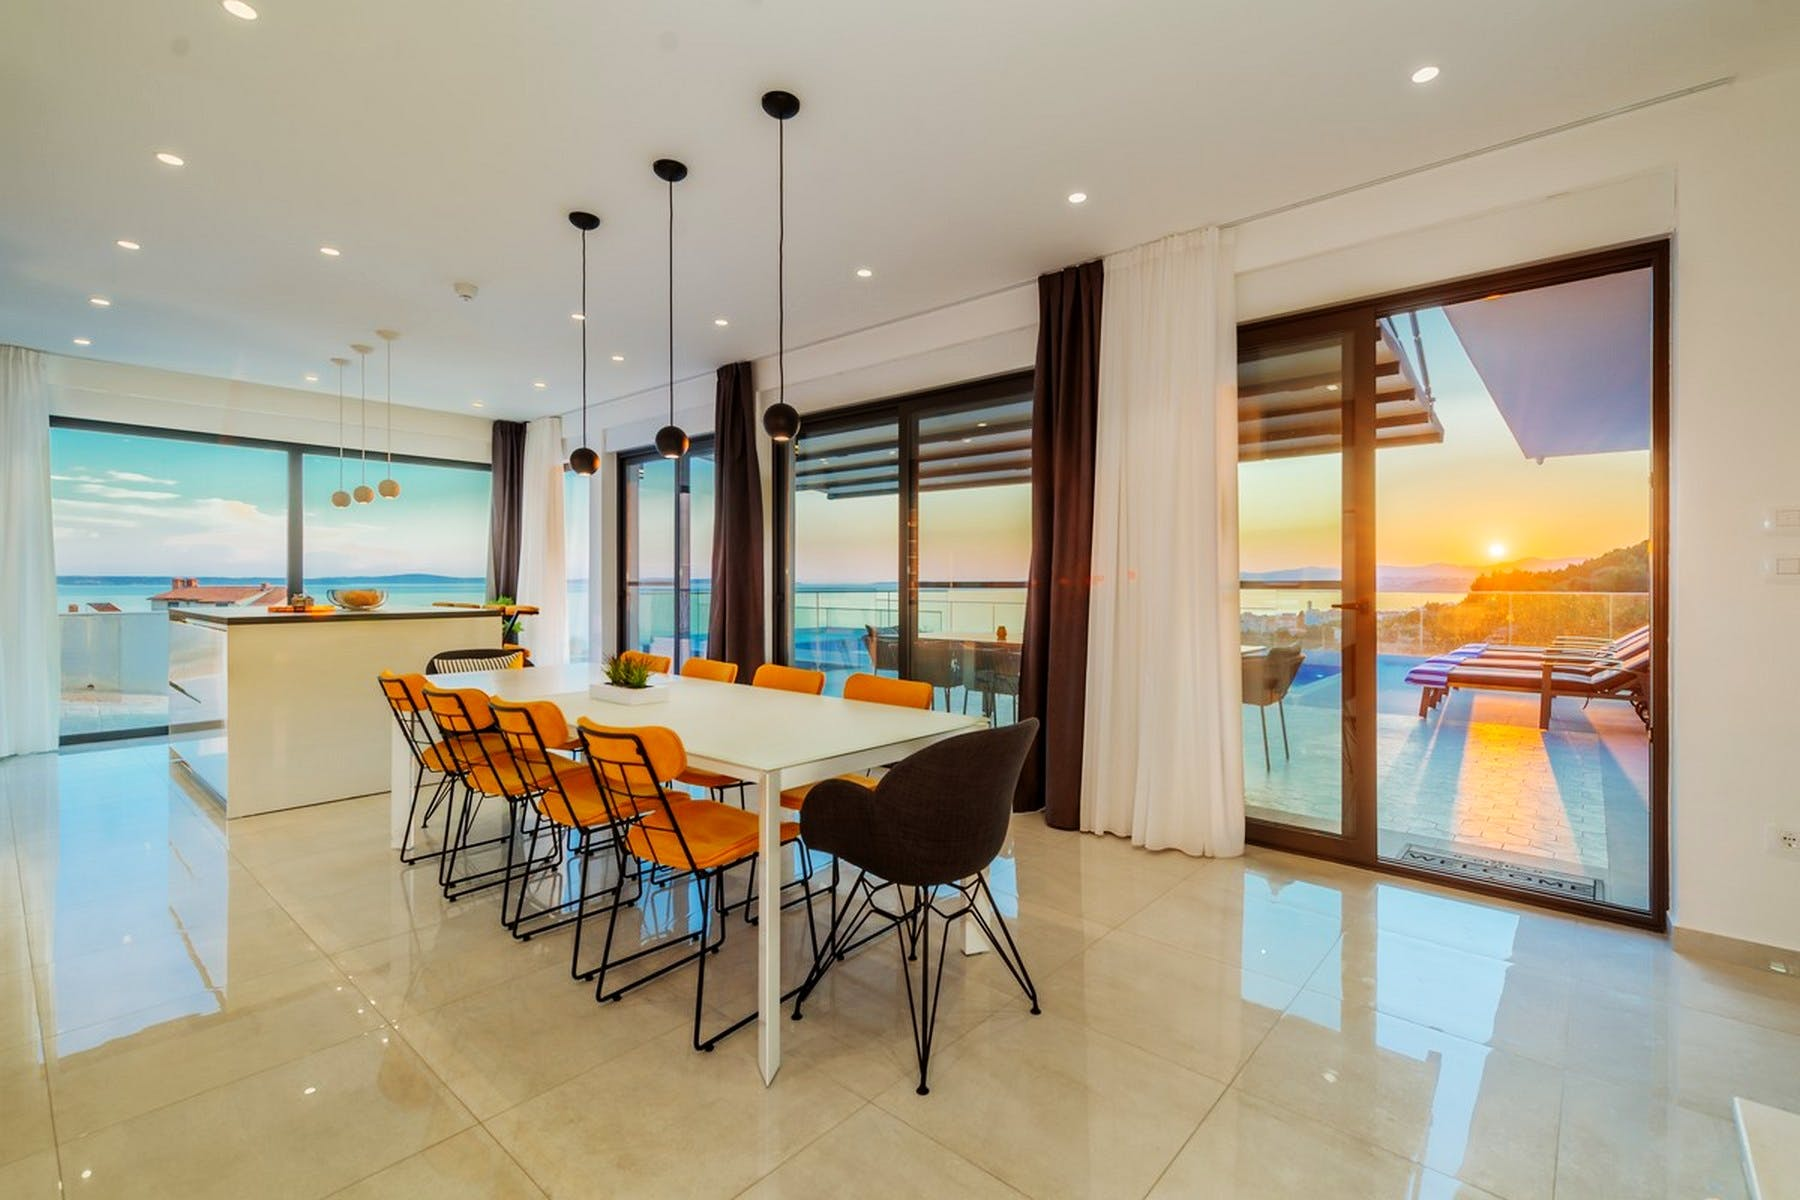 A dining room with a view